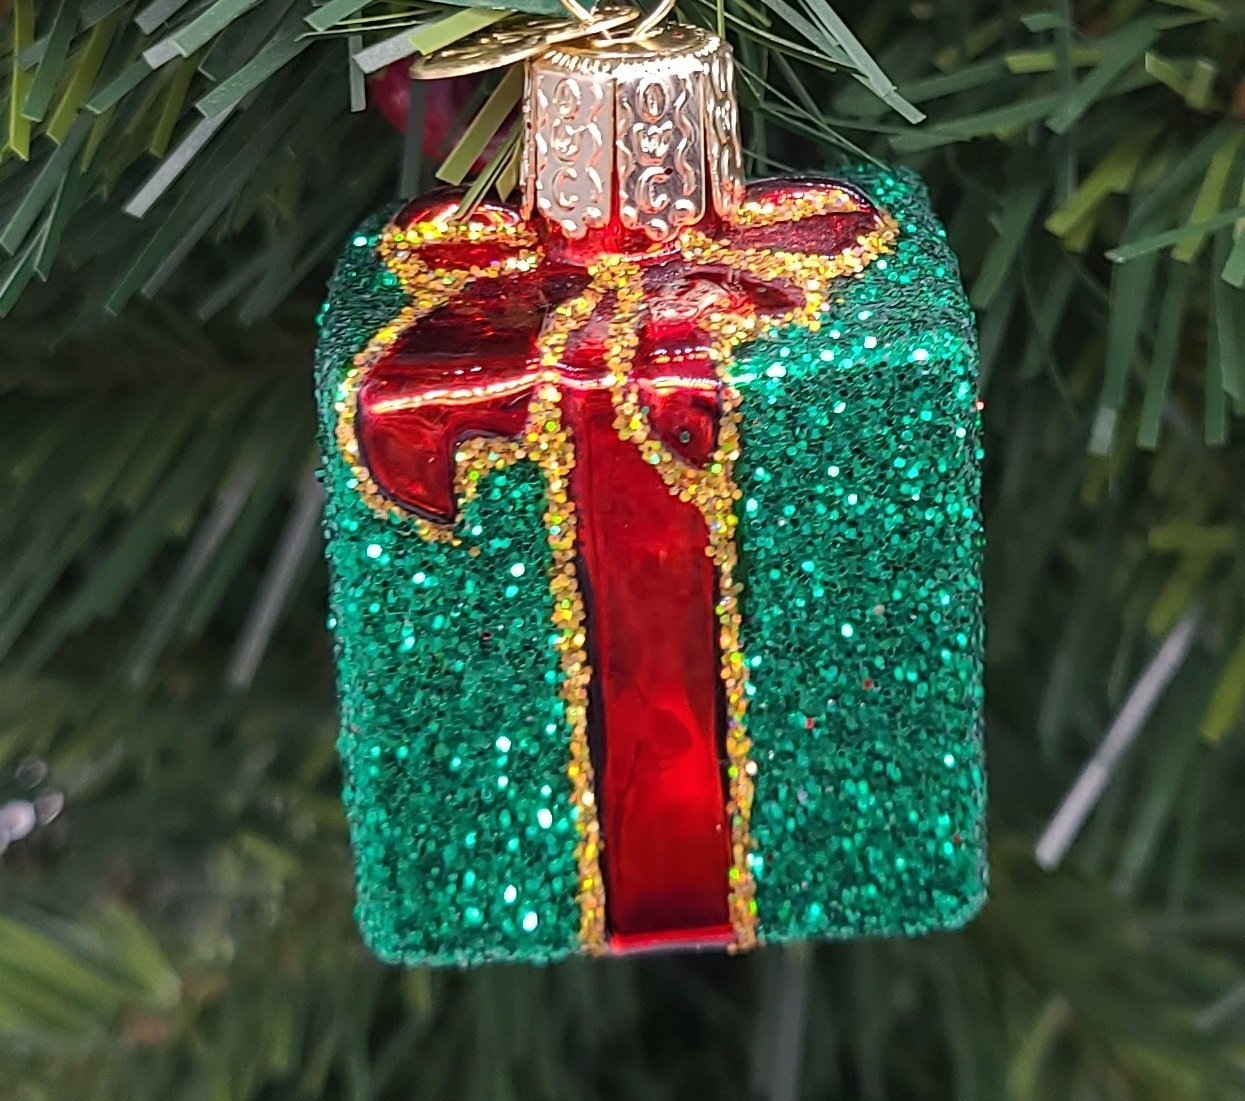 Blown Glass Hanging Green Gift Box with Red Ribbon Christmas Ornament - Schmidt Christmas Market Christmas Decoration